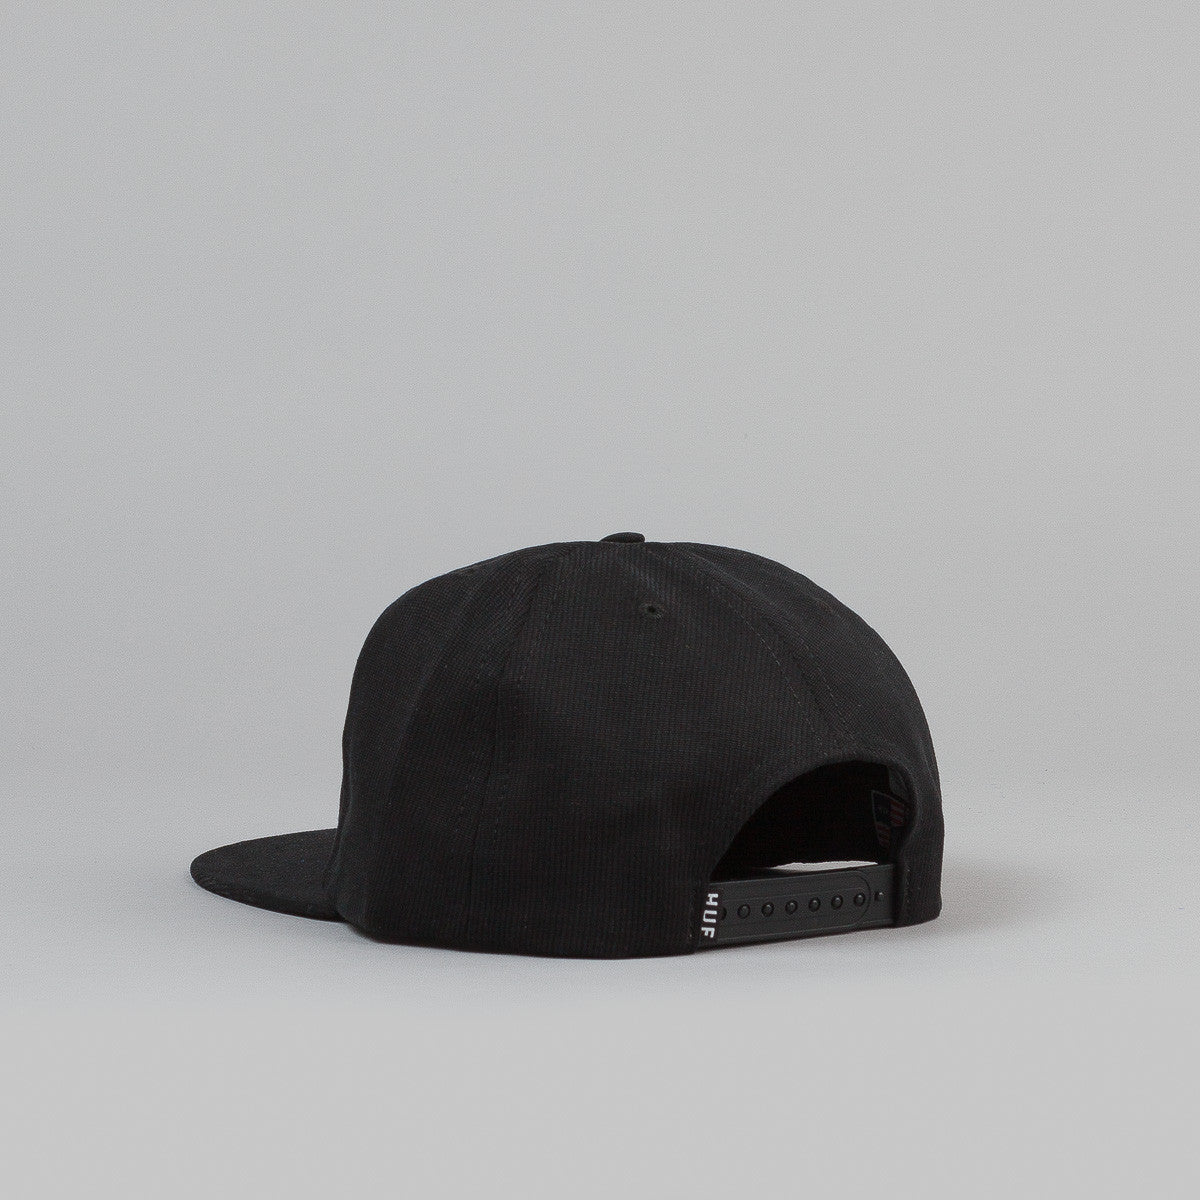 HUF Bedford Triple Triangle Snapback Cap - Black